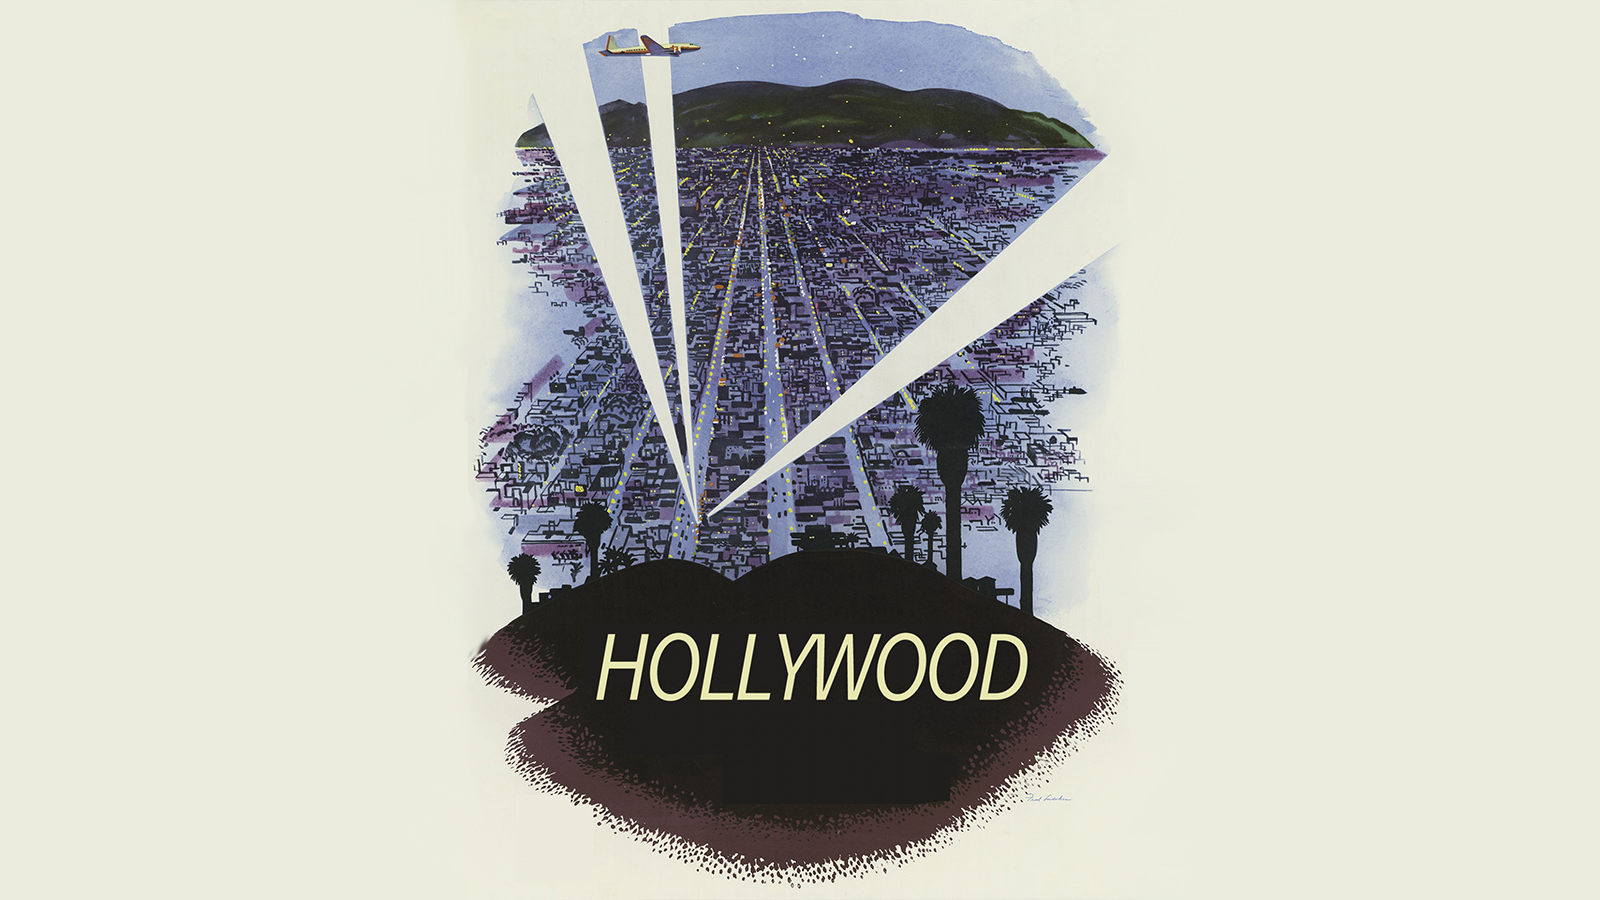 [Program Eleven: Hollywood Babylon: No Escape] Vintage Hollywood poster by Circe Denyer; Creative Commons